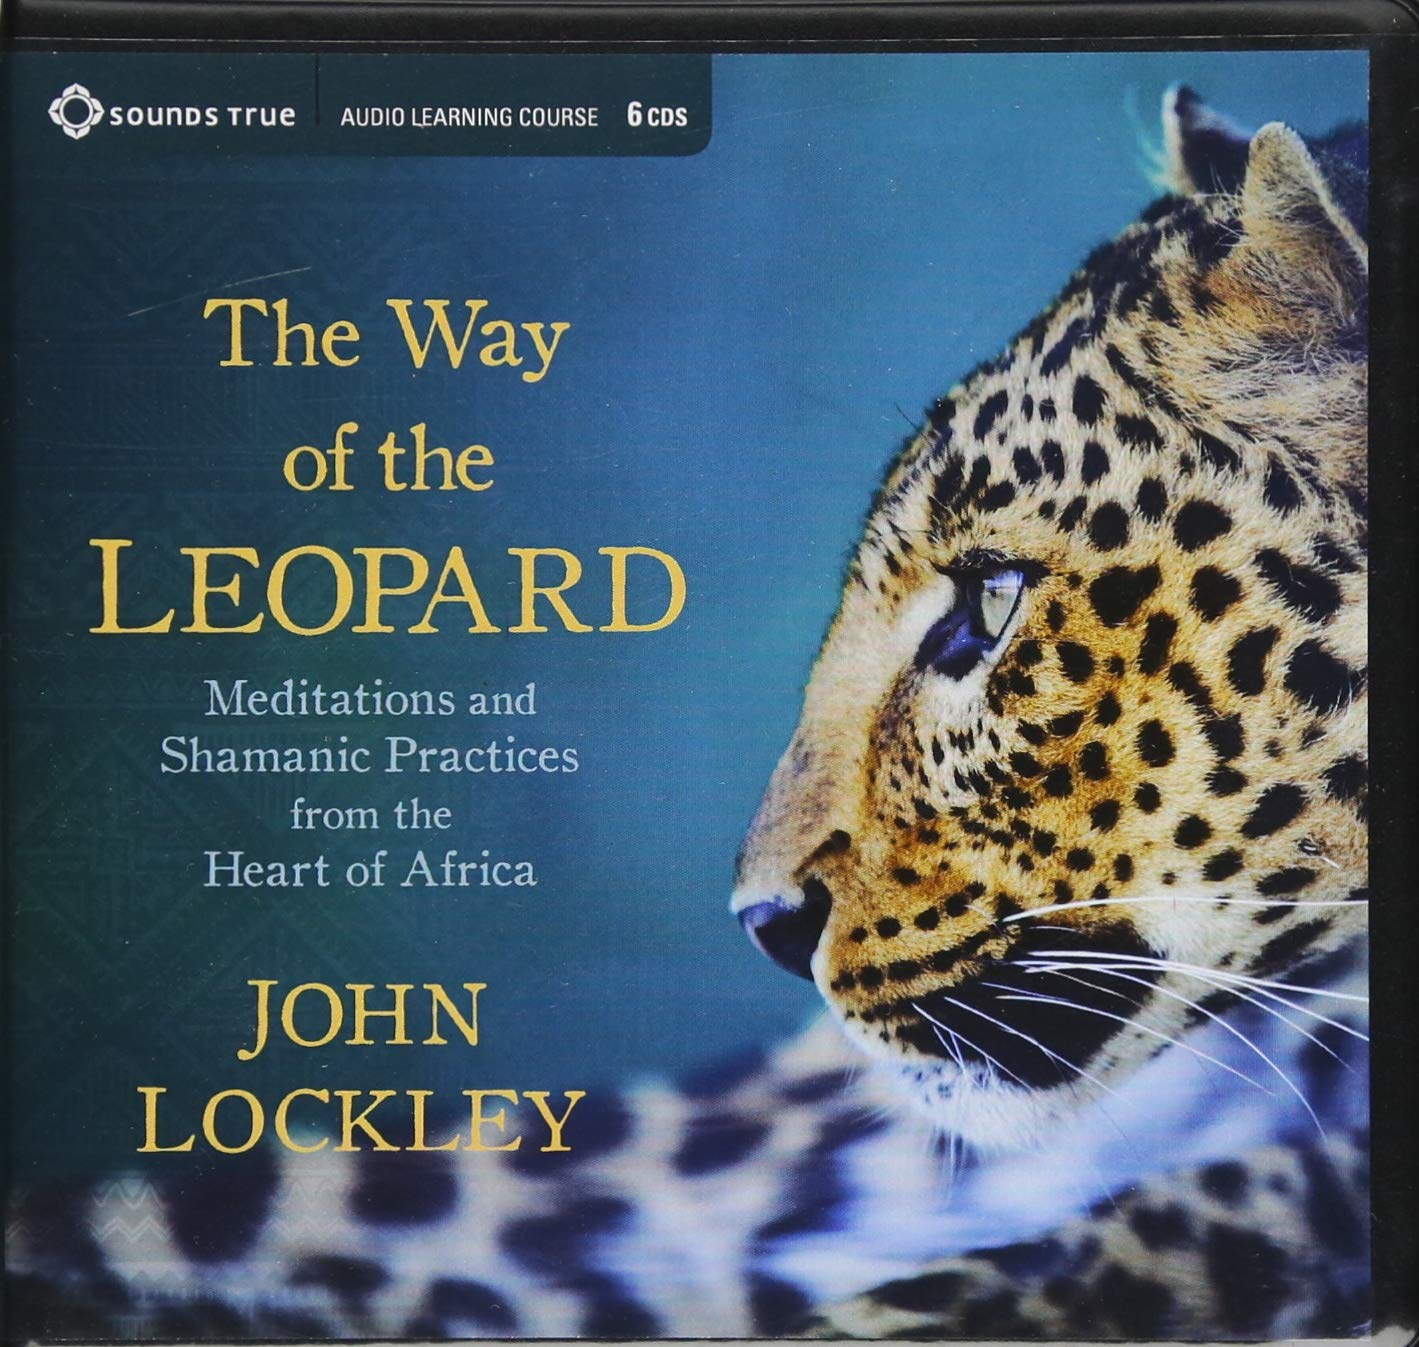 The Way of the Leopard: Meditations and Shamanic Practices from the Heart of Africa